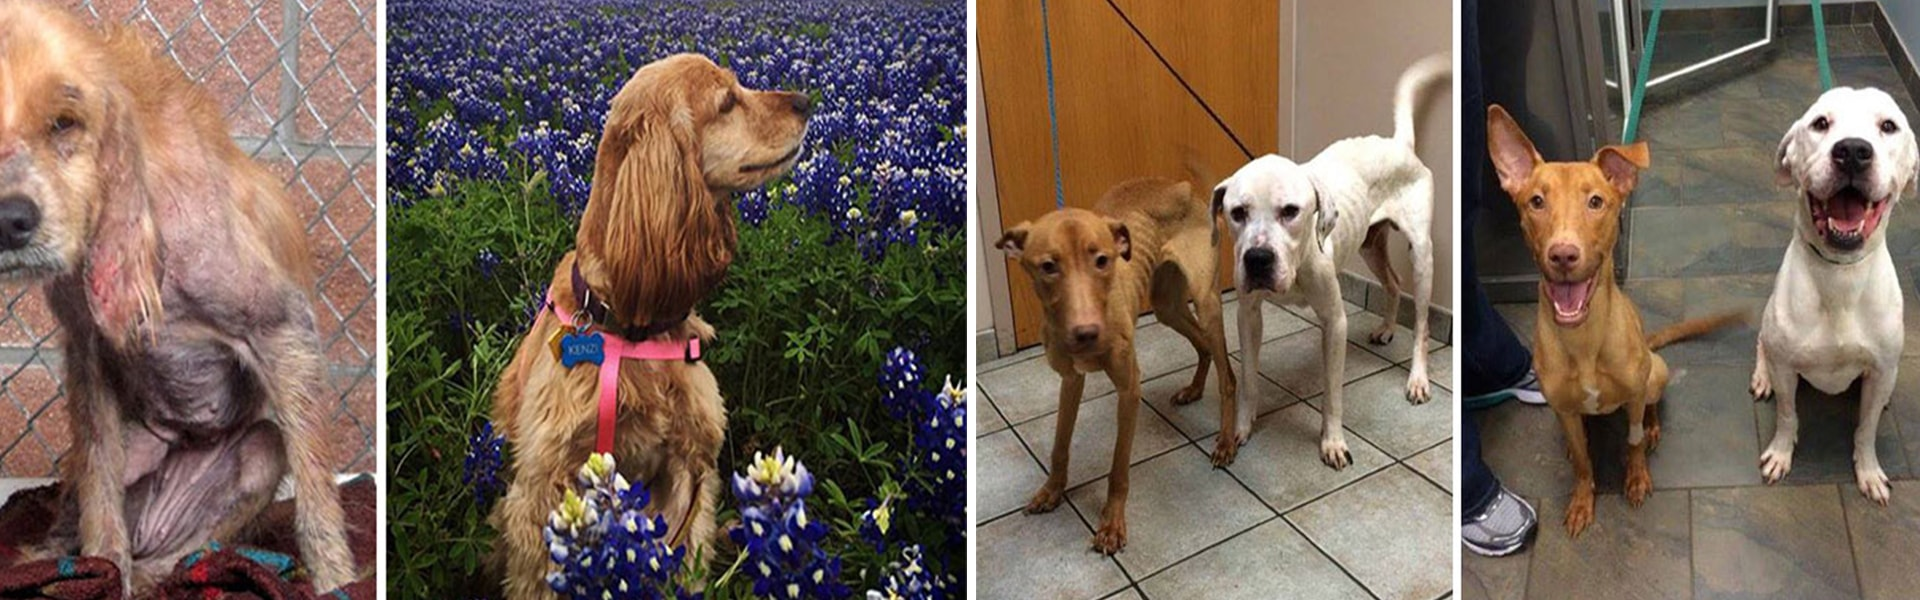 15 fotos de perritos antes y después de ser adoptados (Part 2)-NATION